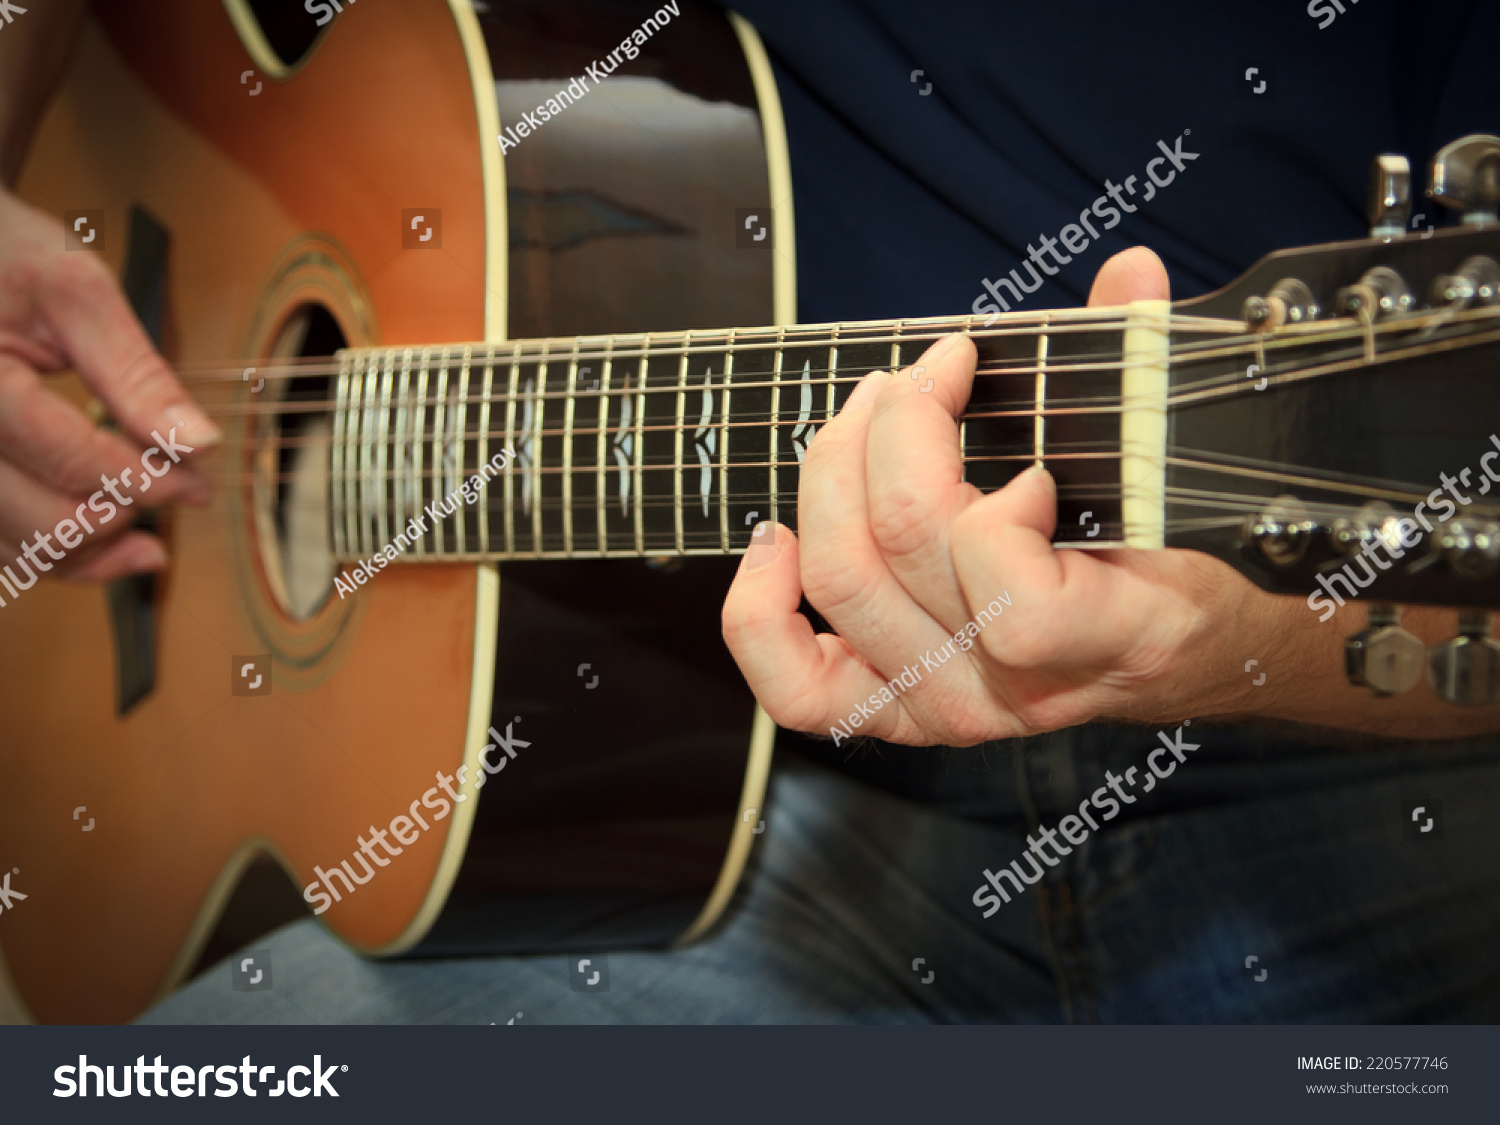 essay on playing guitar